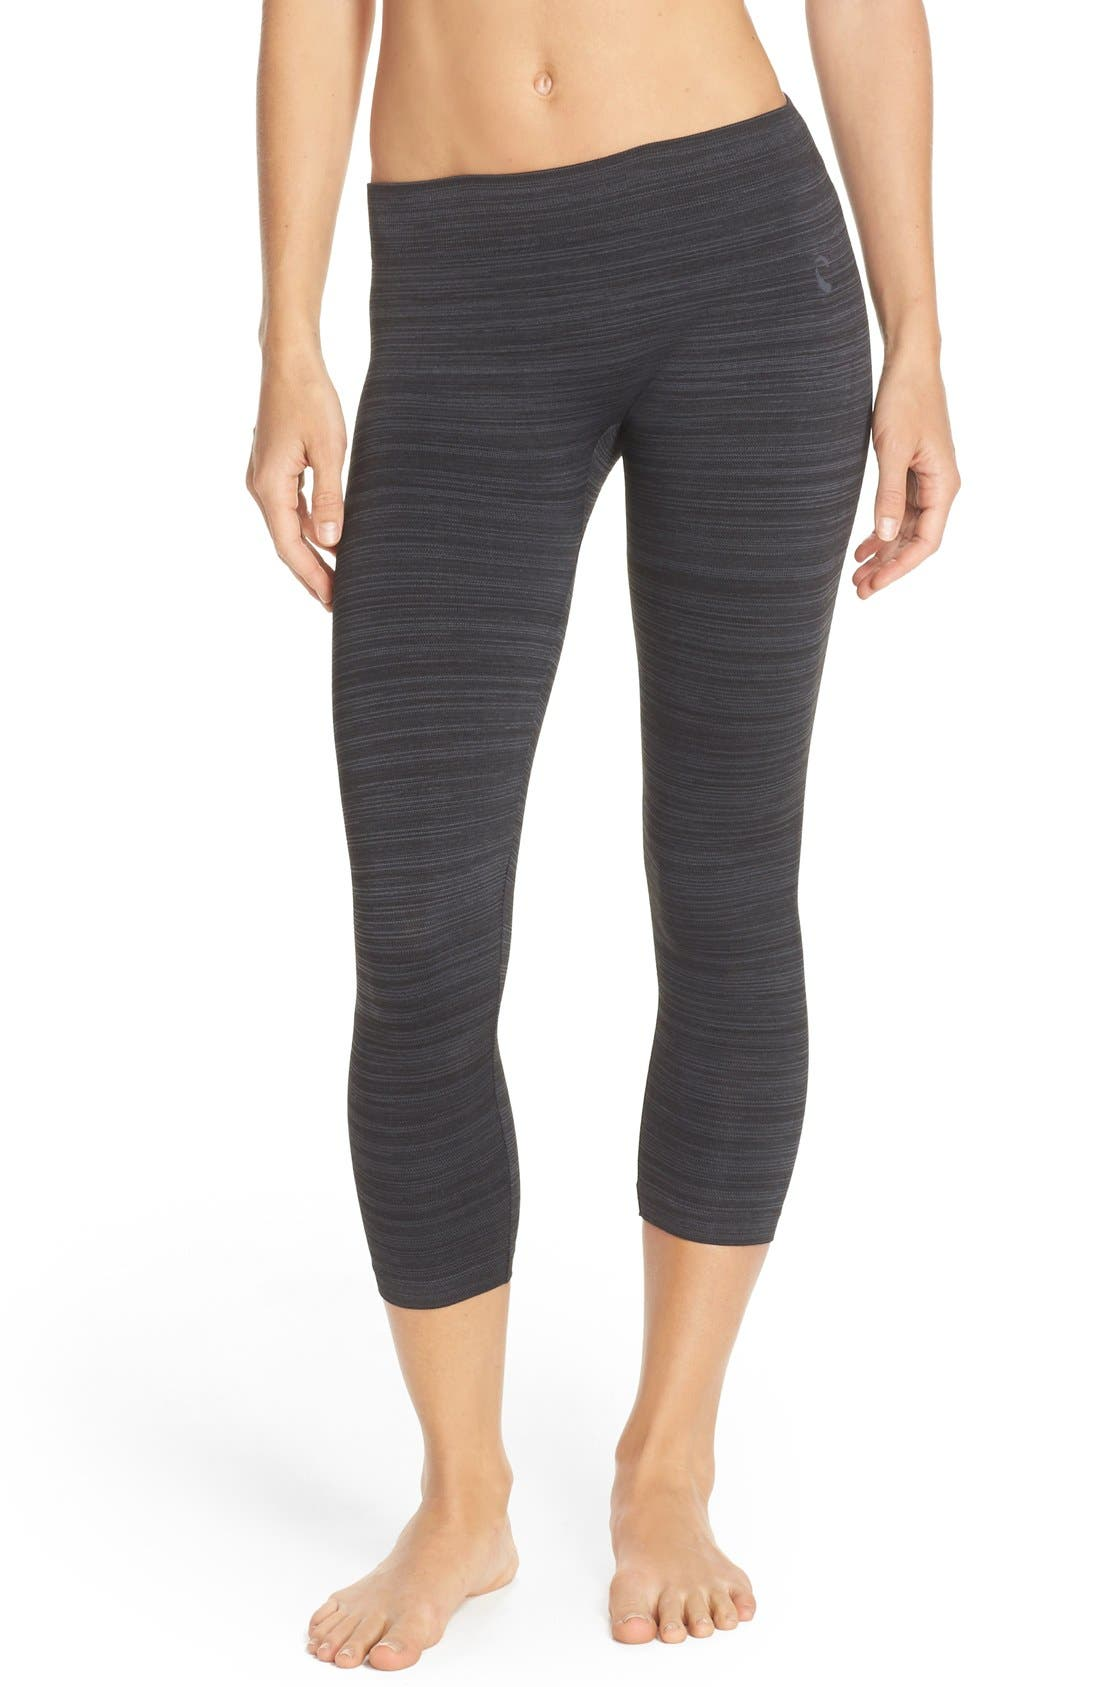 CLIMAWEAR 'Catch a Glimpse' Cutout Crop Leggings